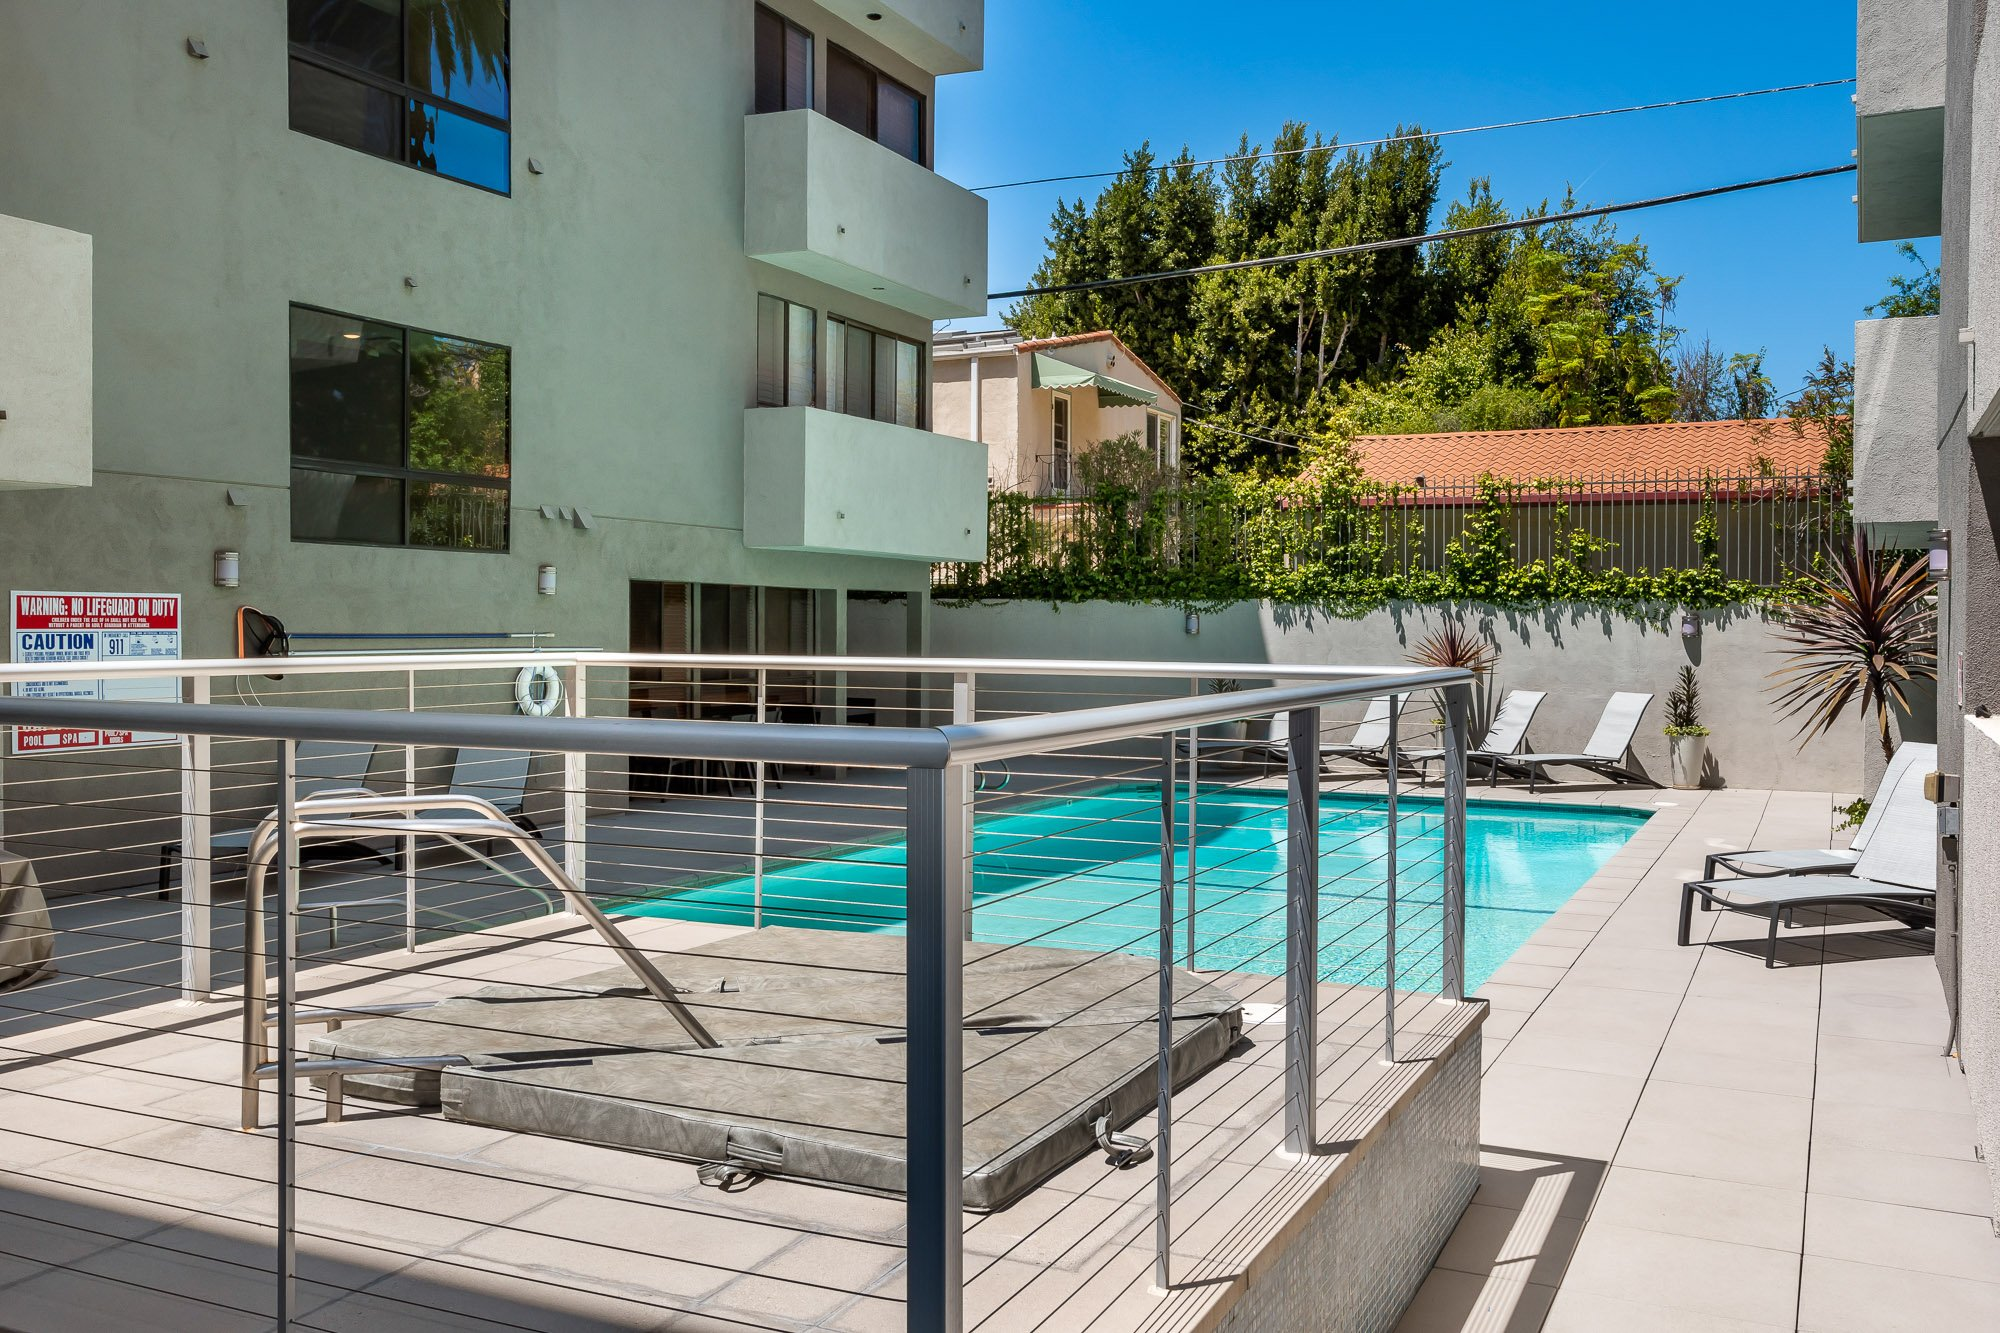 12115 San Vicente Blvd #112, Brentwood, CA, 90049